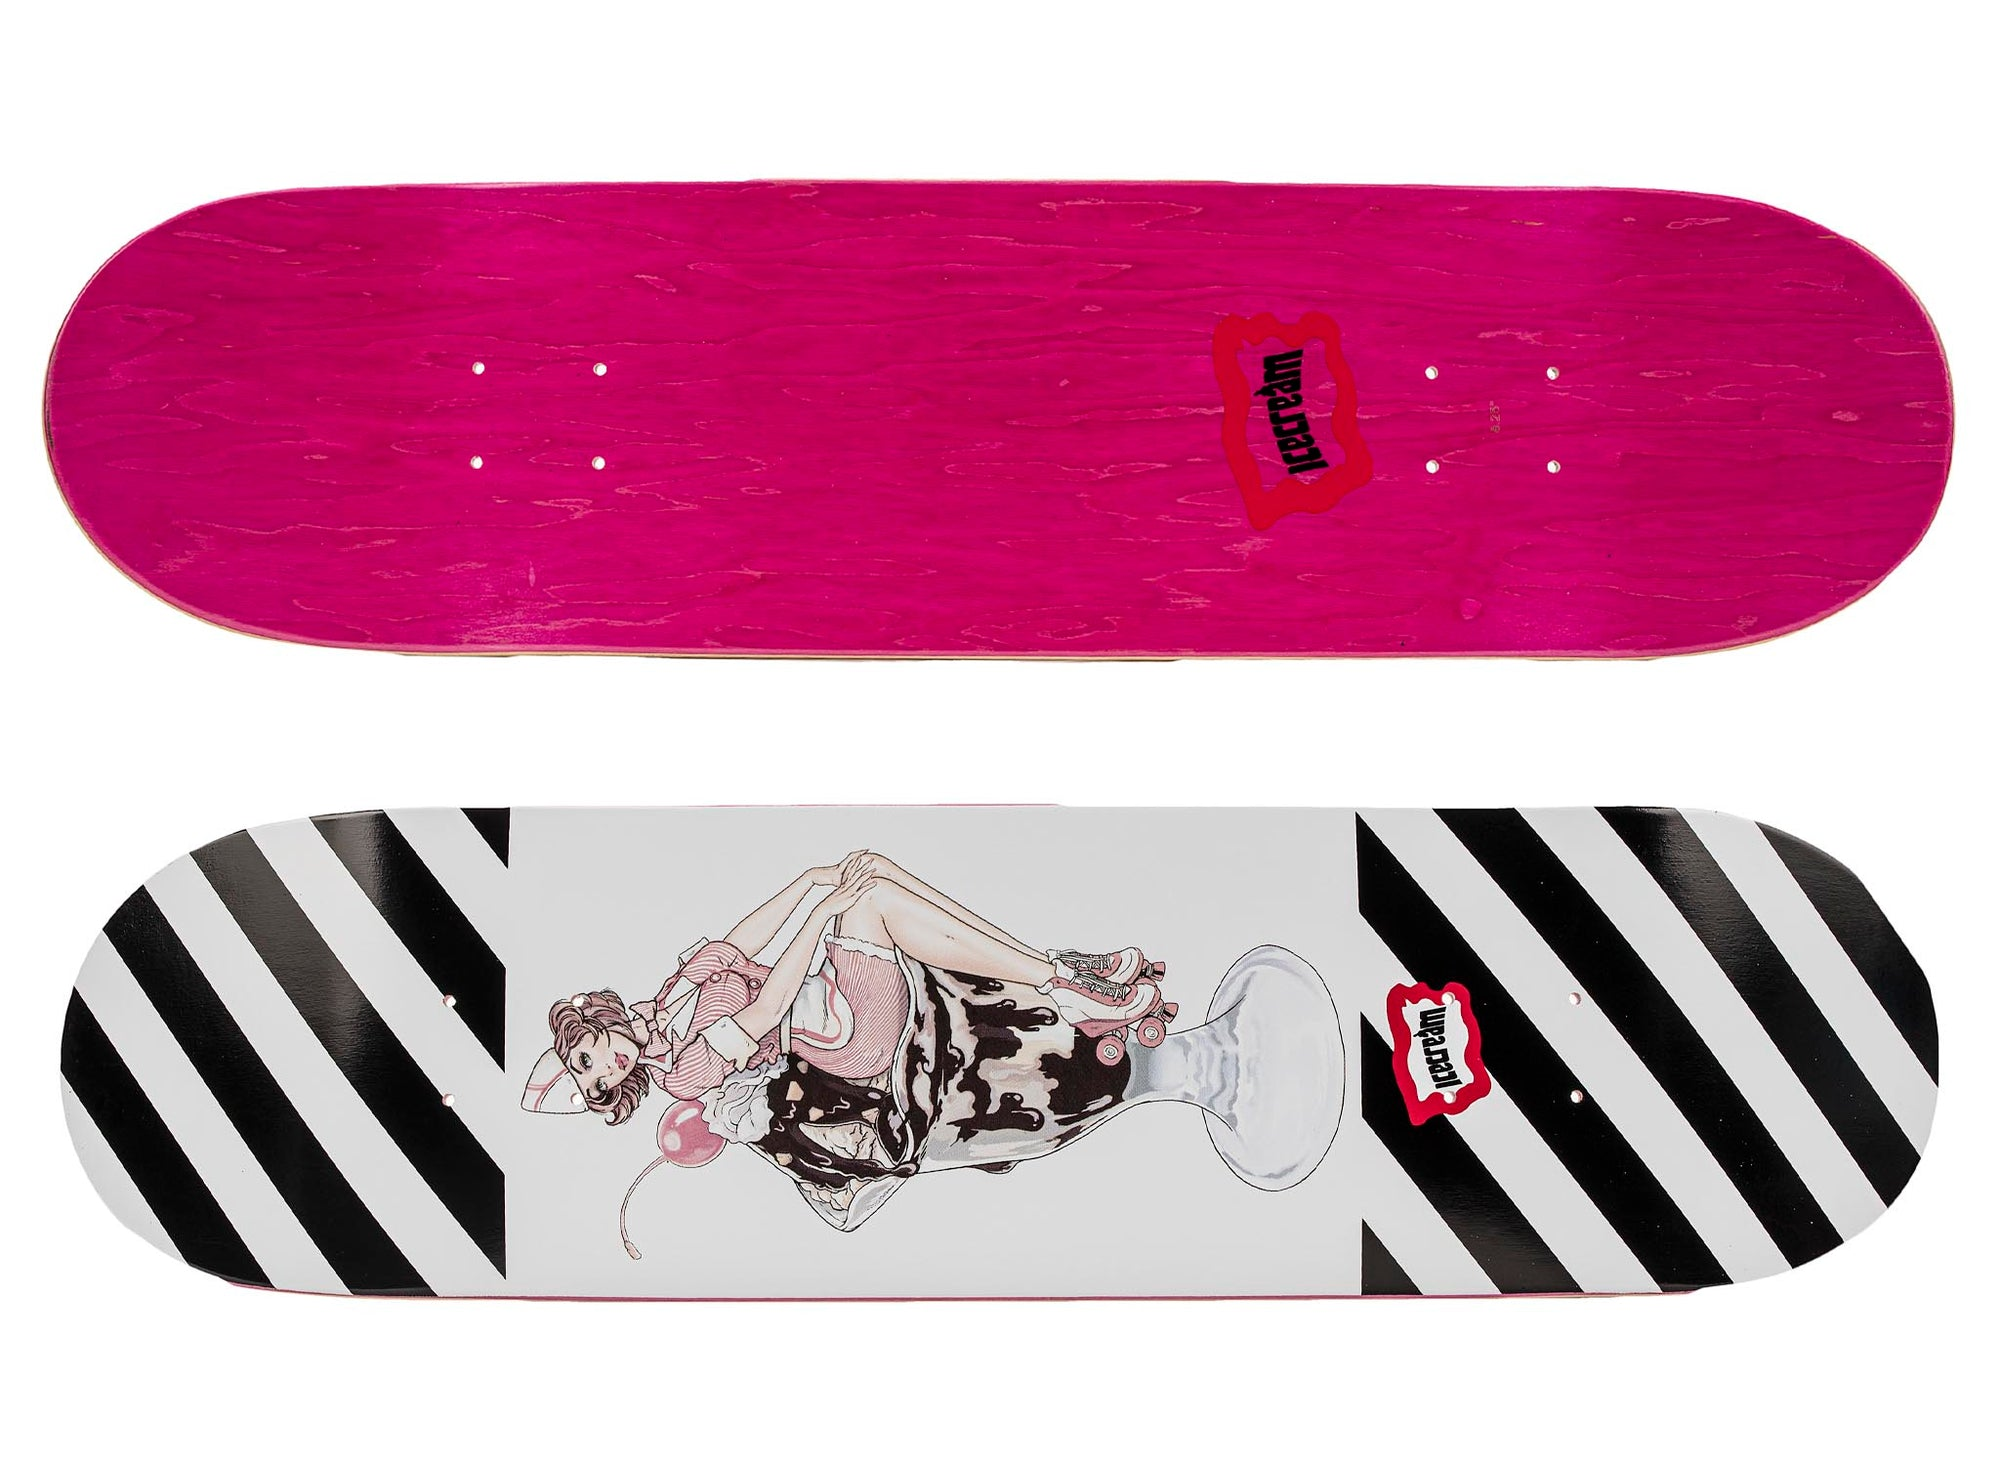 ICE CREAM Chocolate Skate Deck 'Pink'